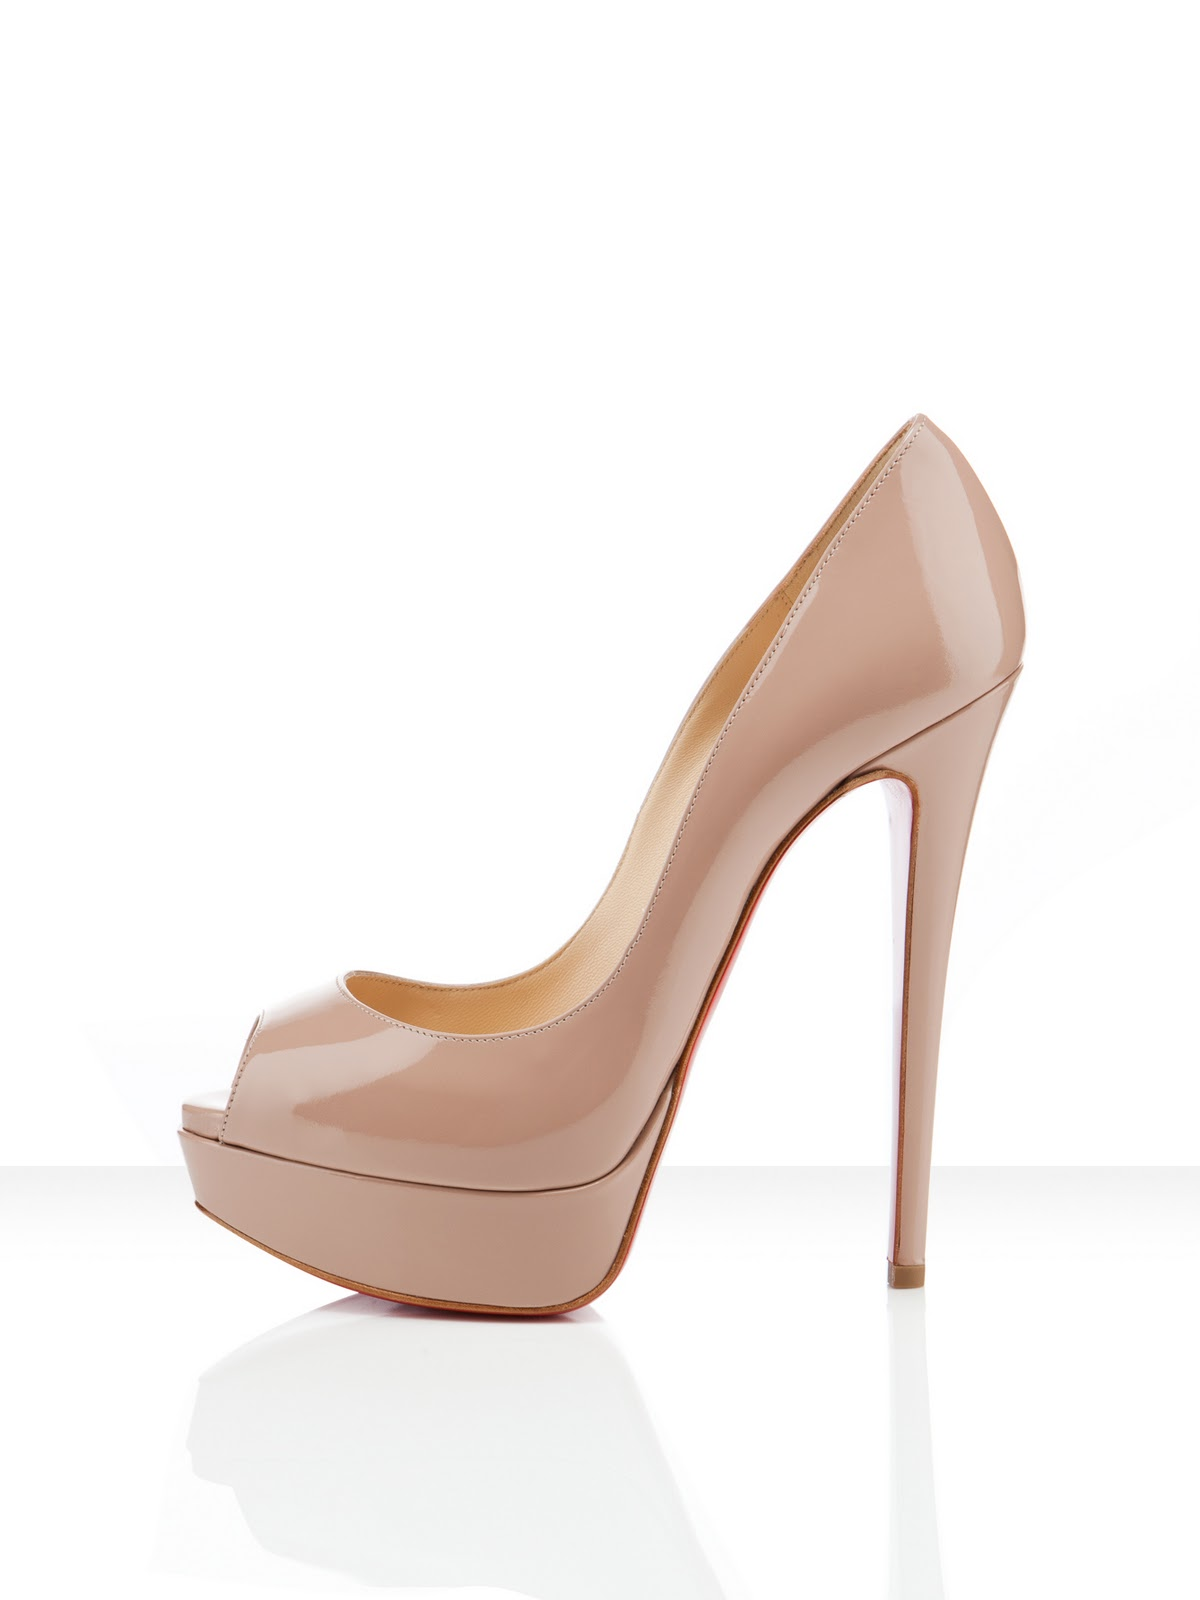 Christian Louboutin granate